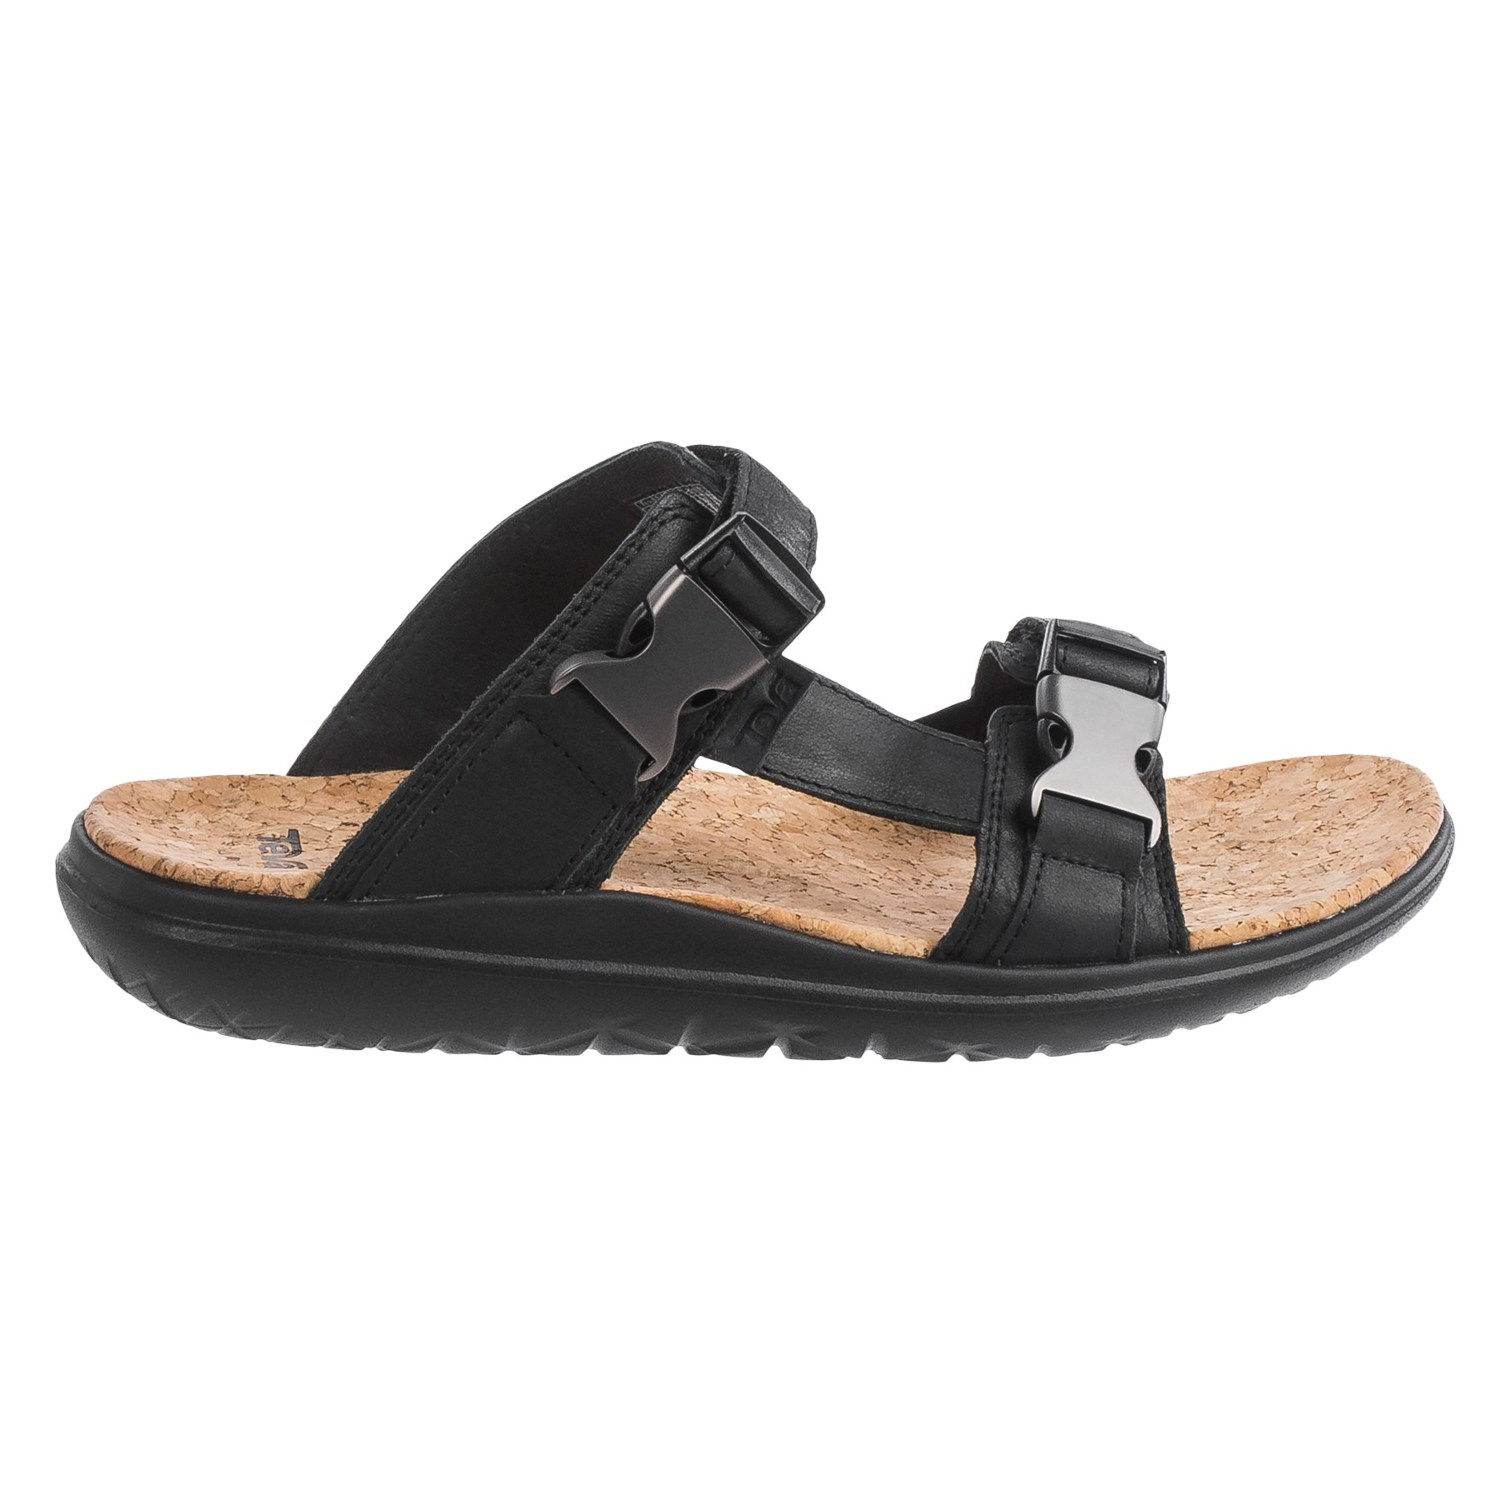 ca5b0b3e32b25 Teva Terra-Float Slide Lux Sandals (For Men) - Save 54%